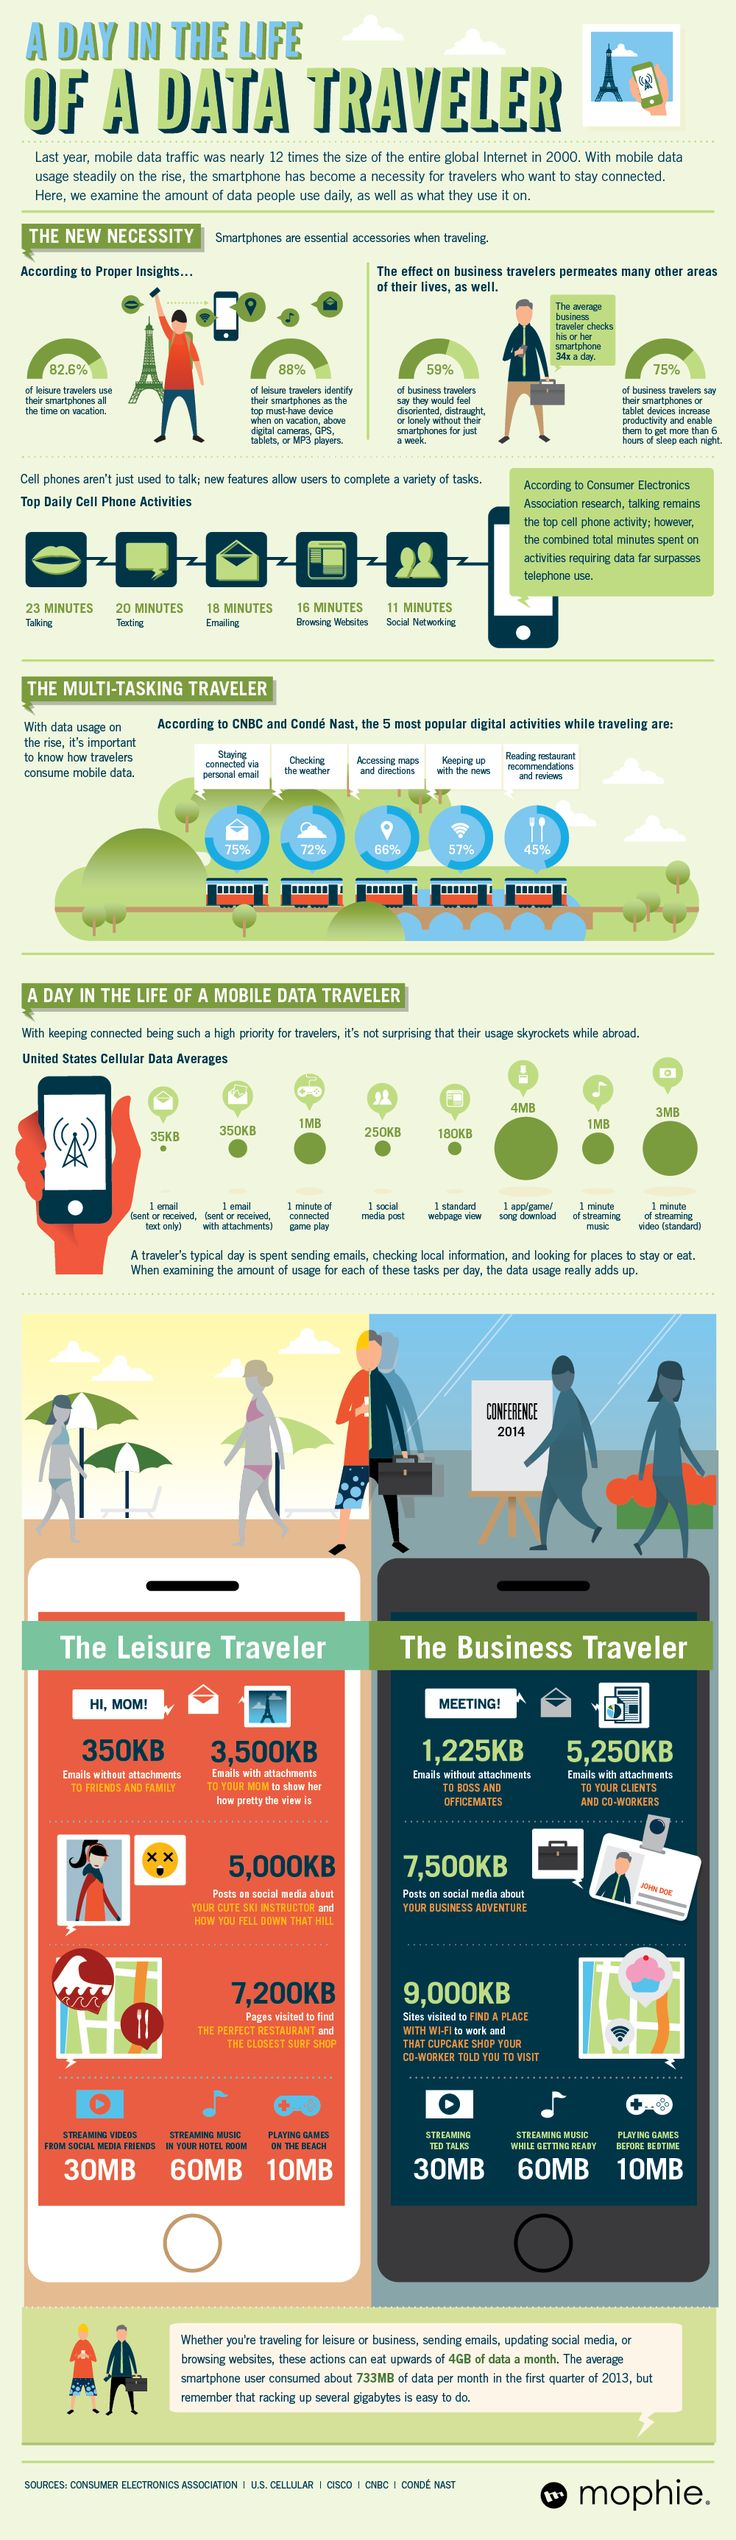 A day in the life of a data traveler #infographic